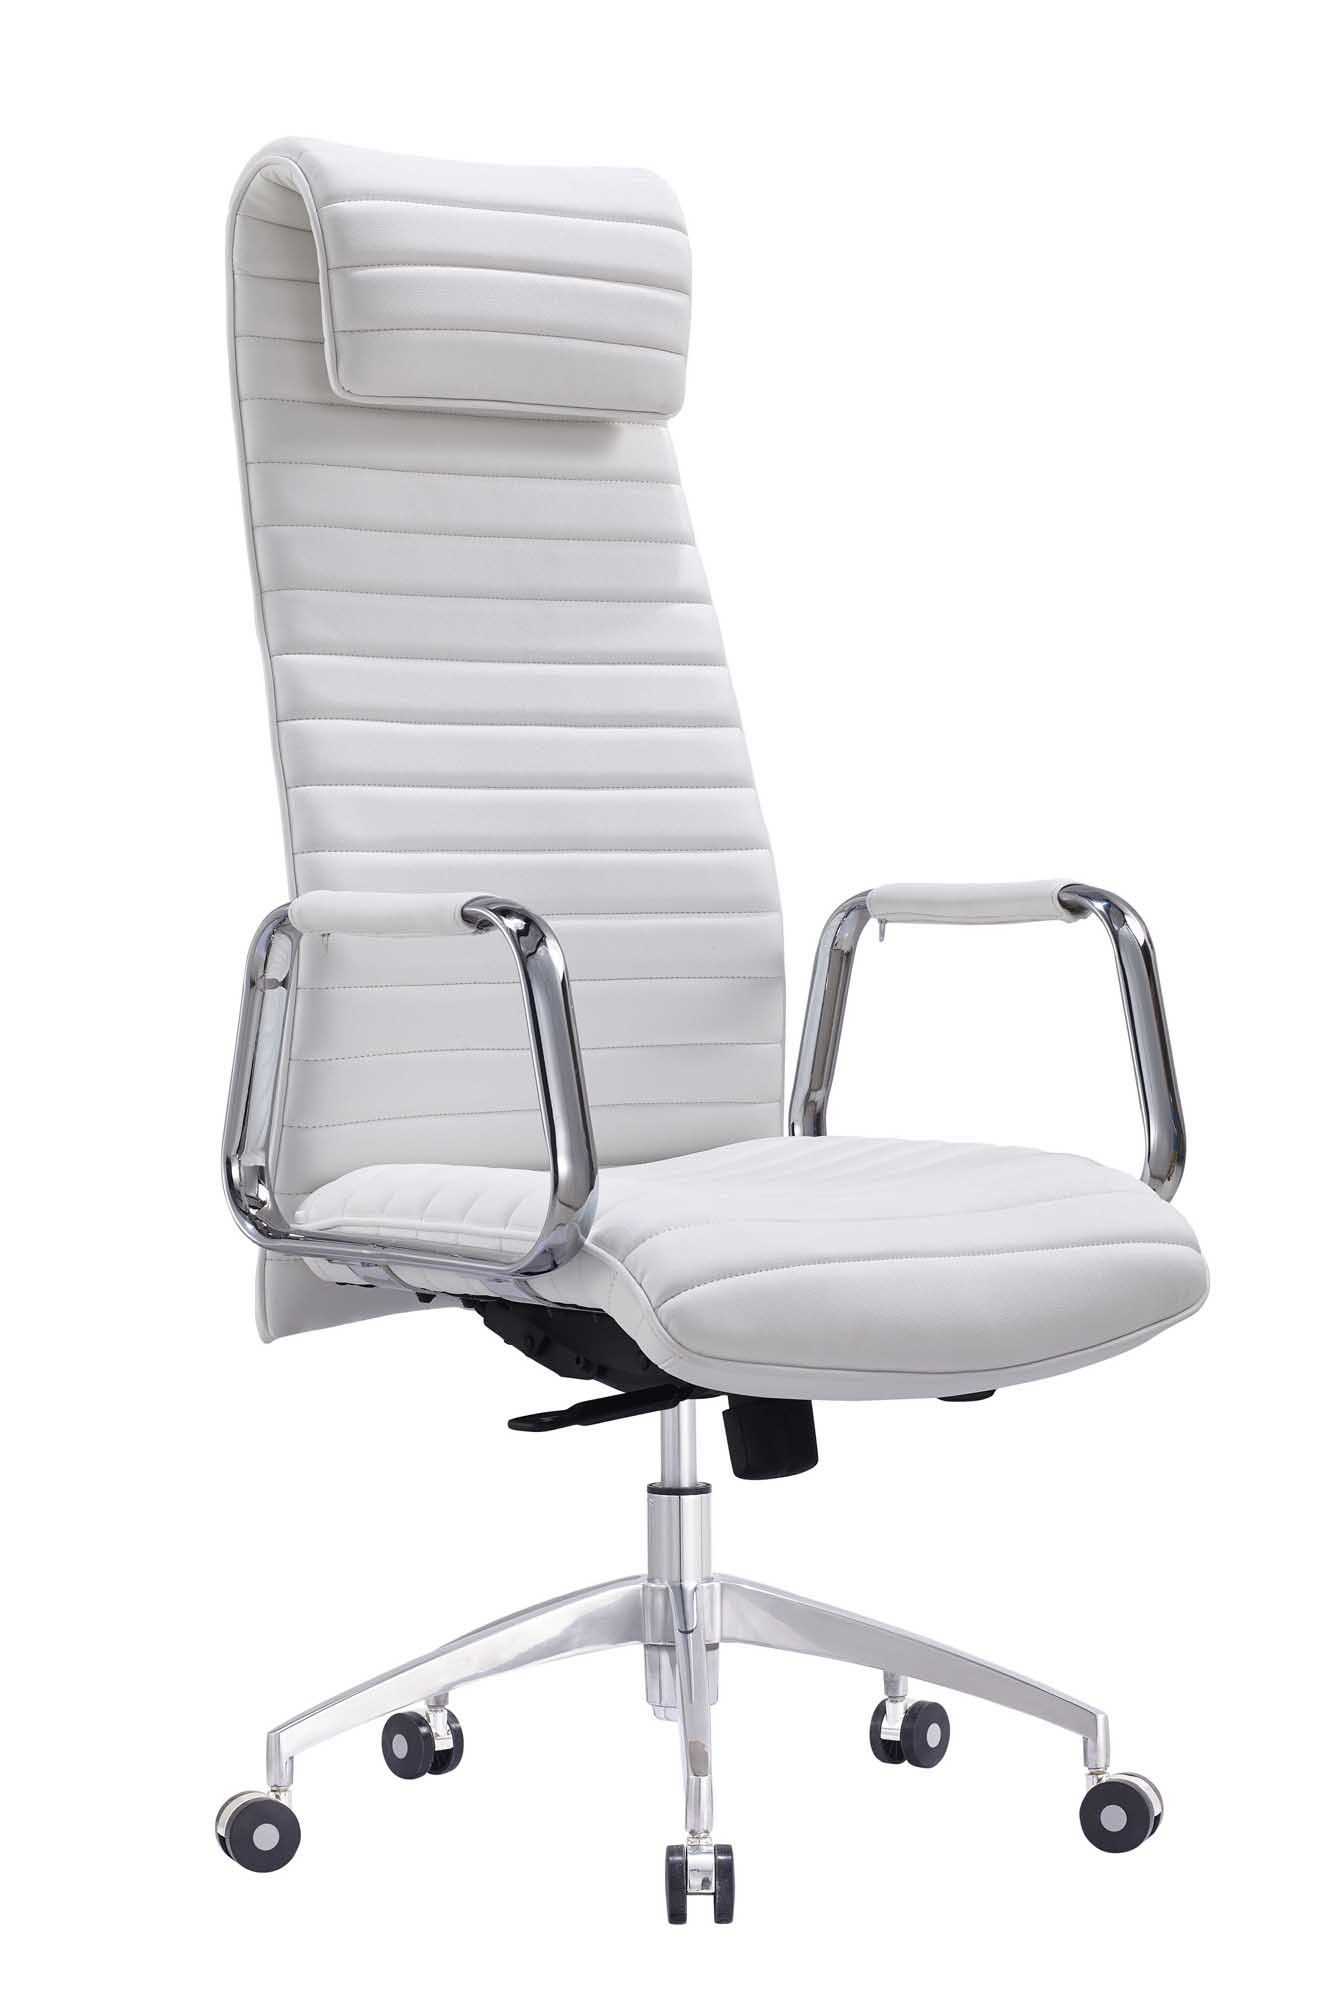 Whiteline oxford executive high back office chair